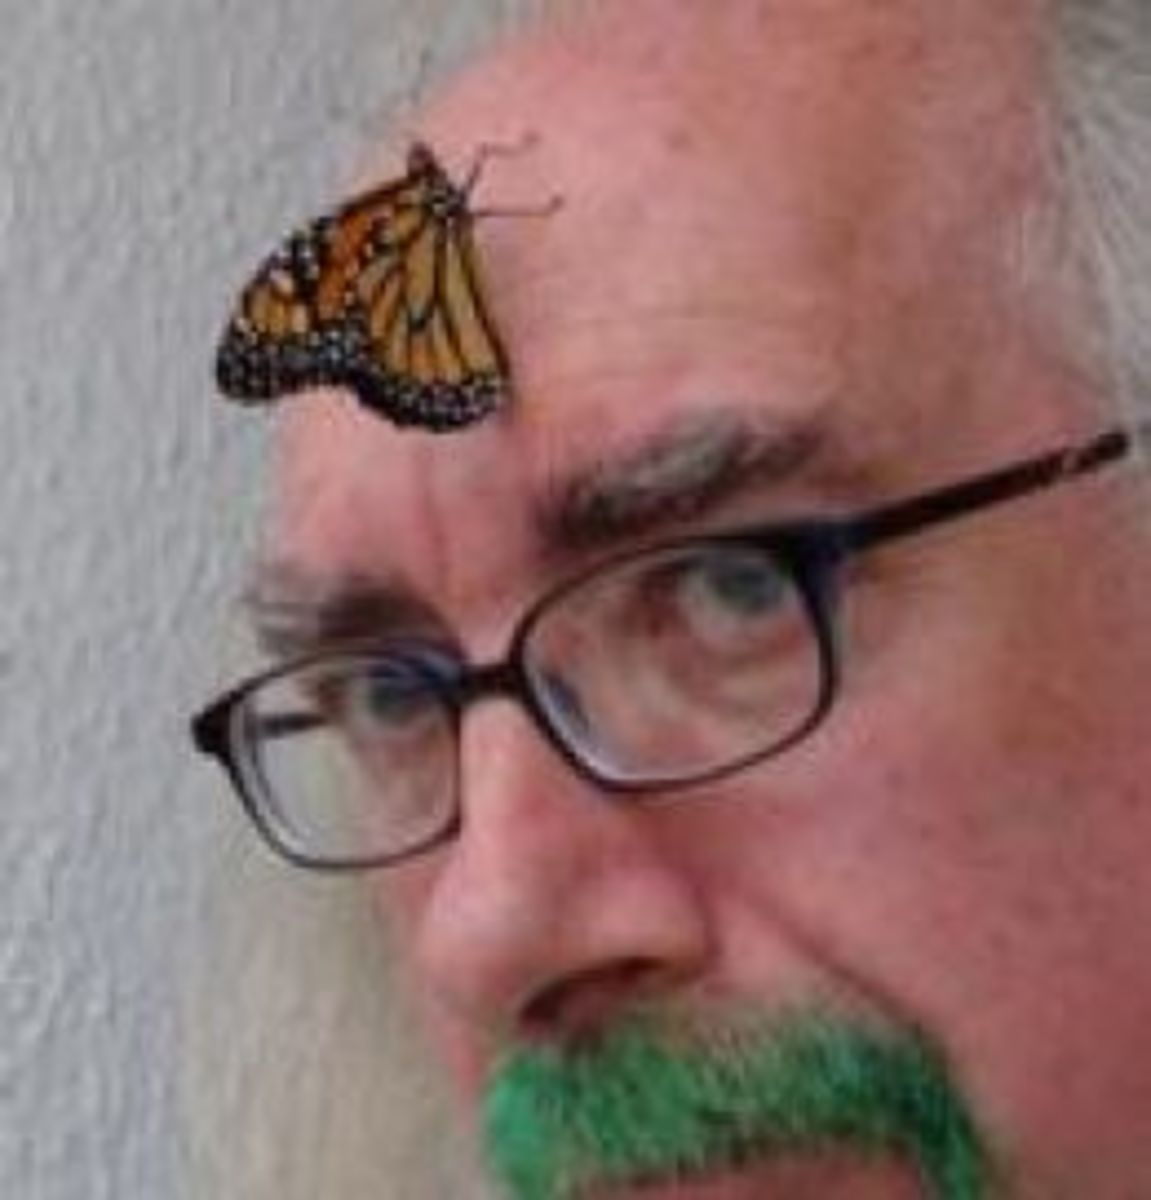 Bard of Ely with a Monarch on his head